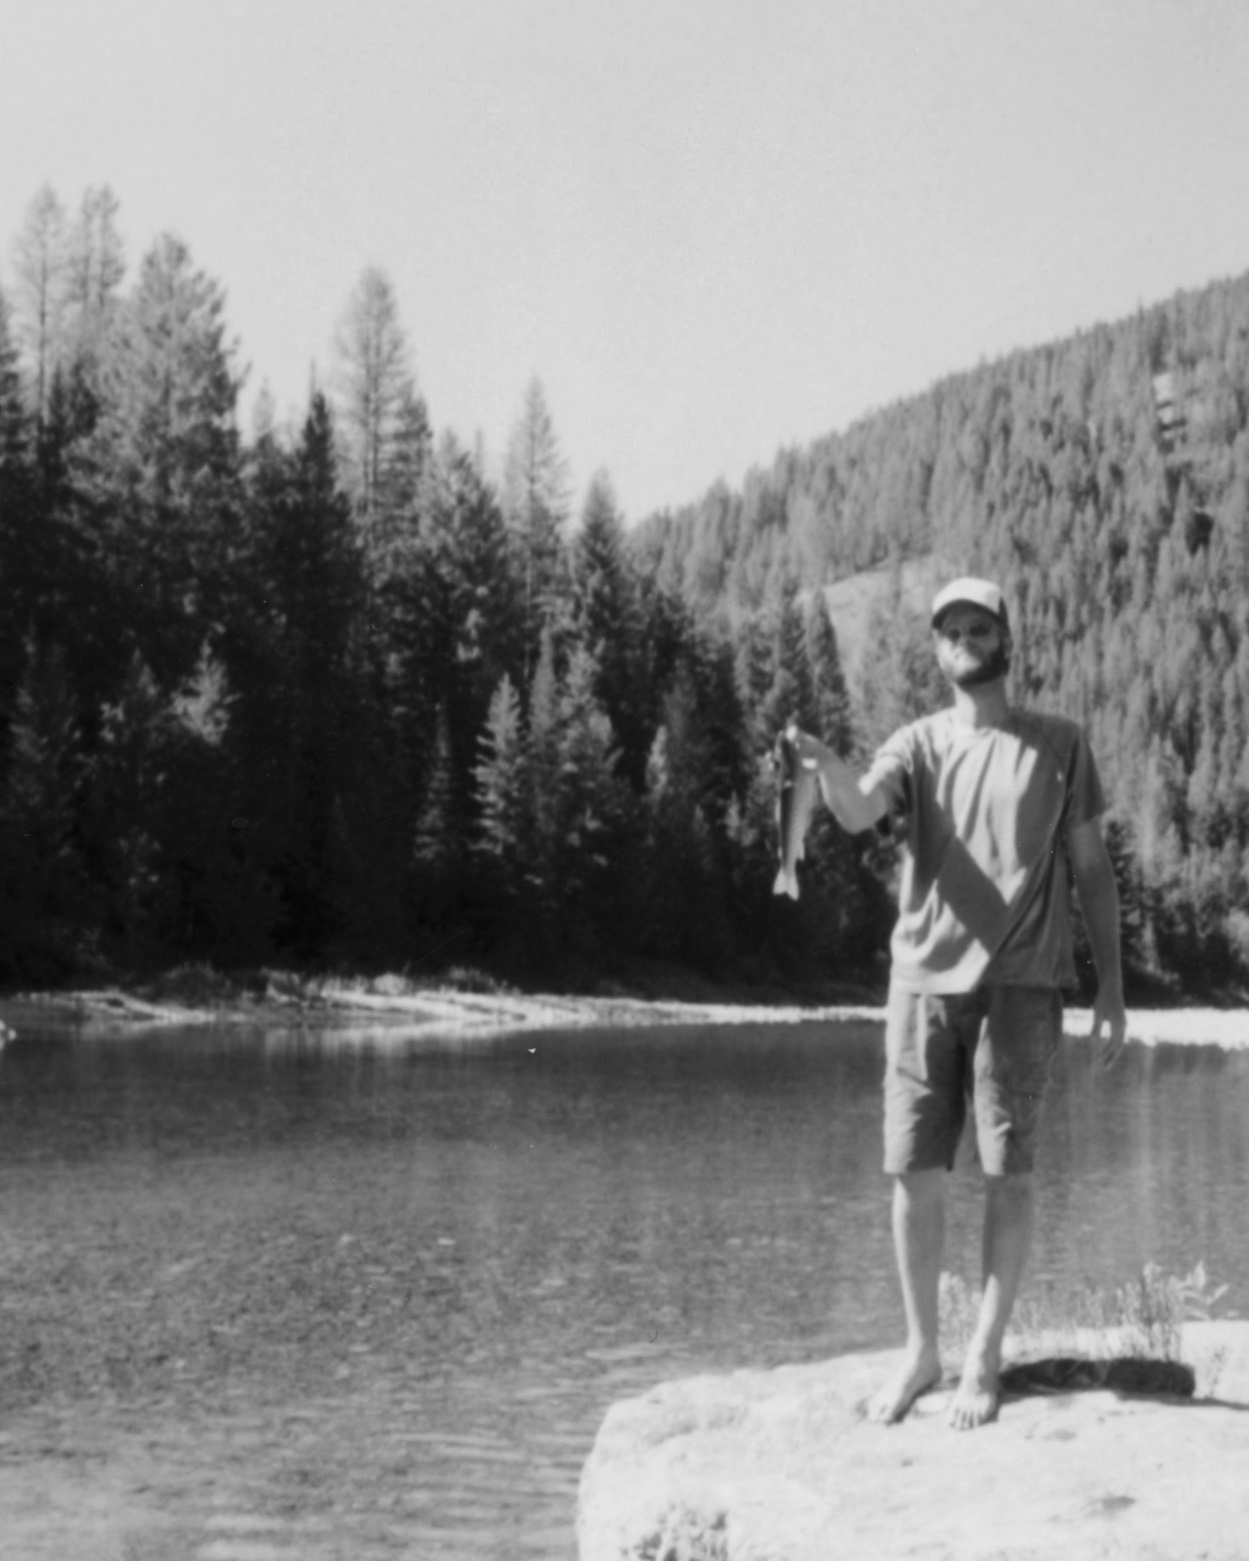 The Whitewater Rafter + Fly Fisherman - A story about sharing the love of summertime adventures with your young family.